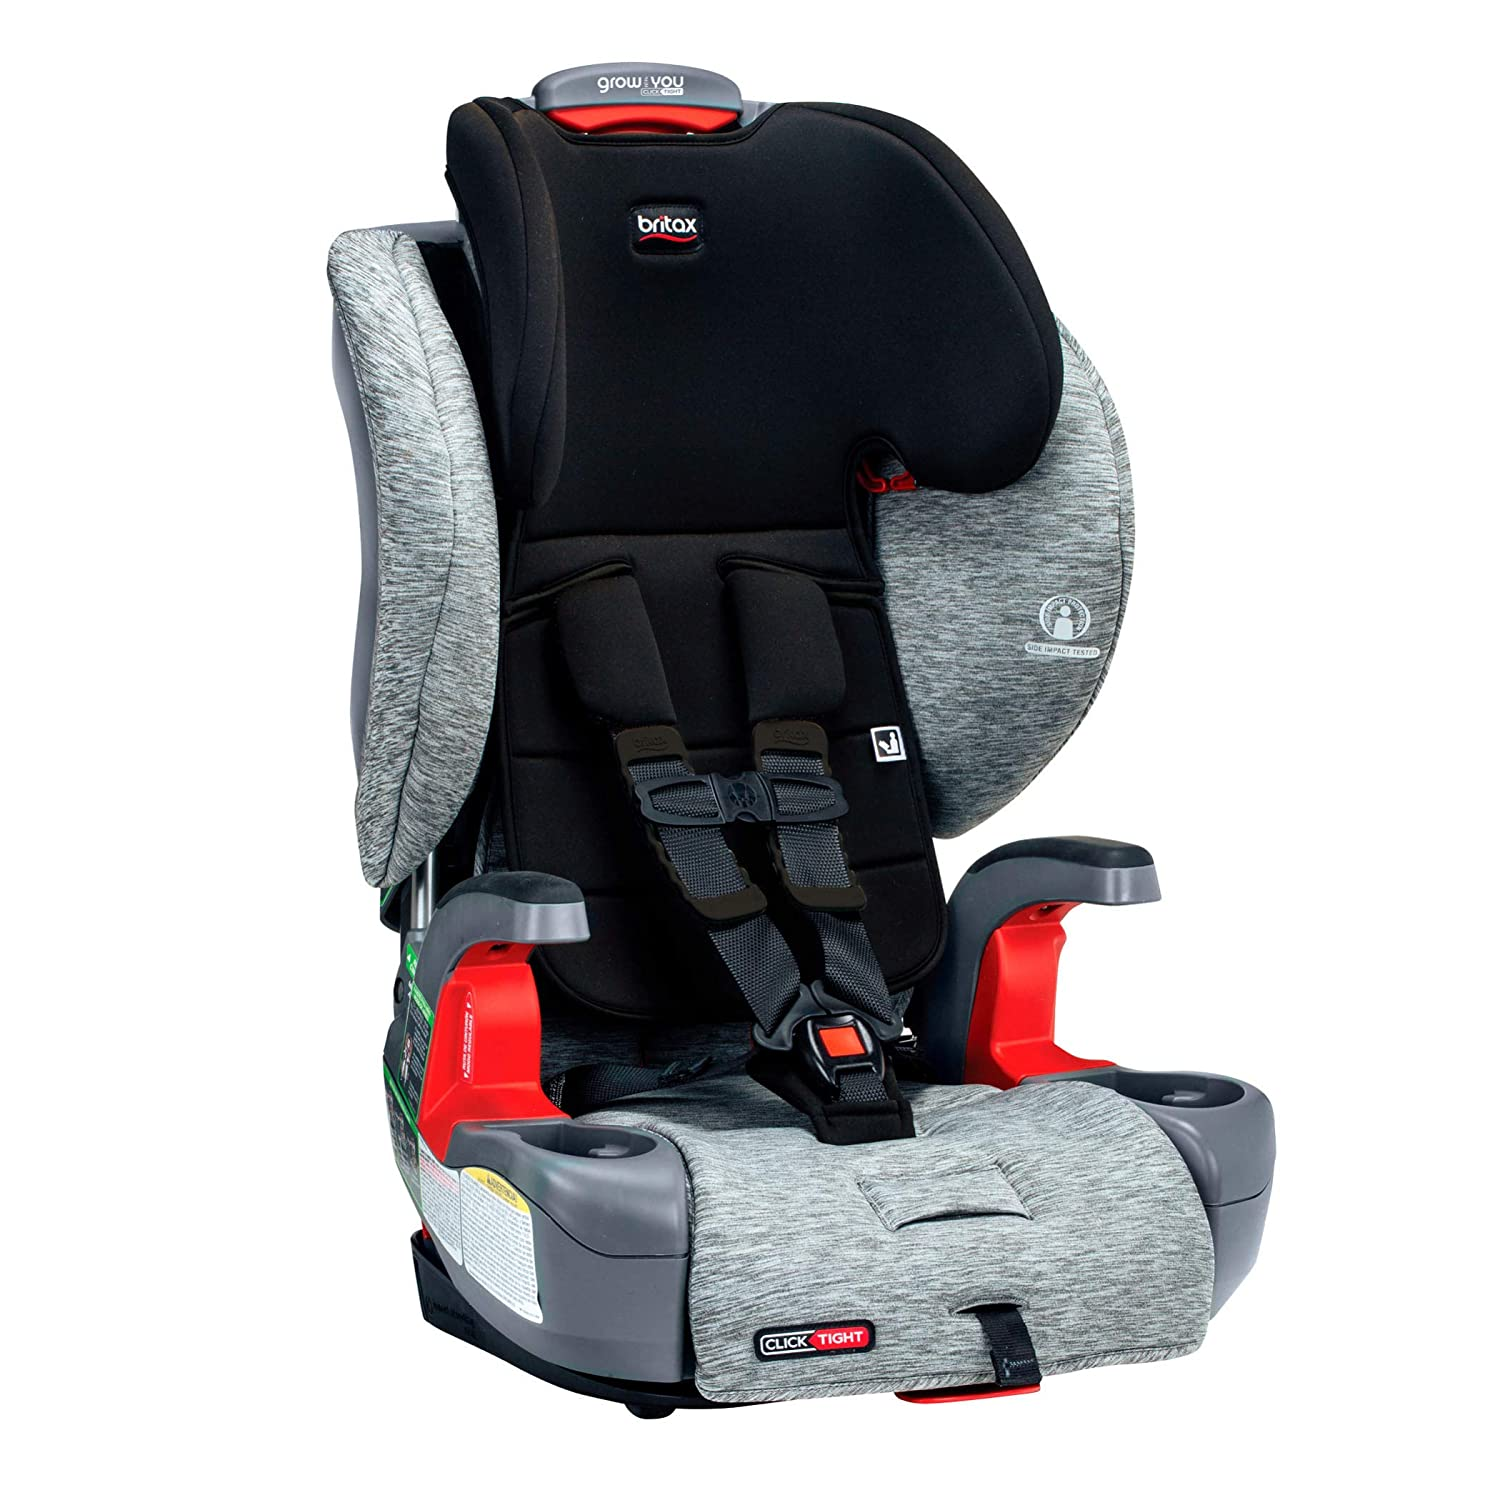 Britax Grow Harness 2 Booster Car Seat Best Booster Seats with 5 Point Harness